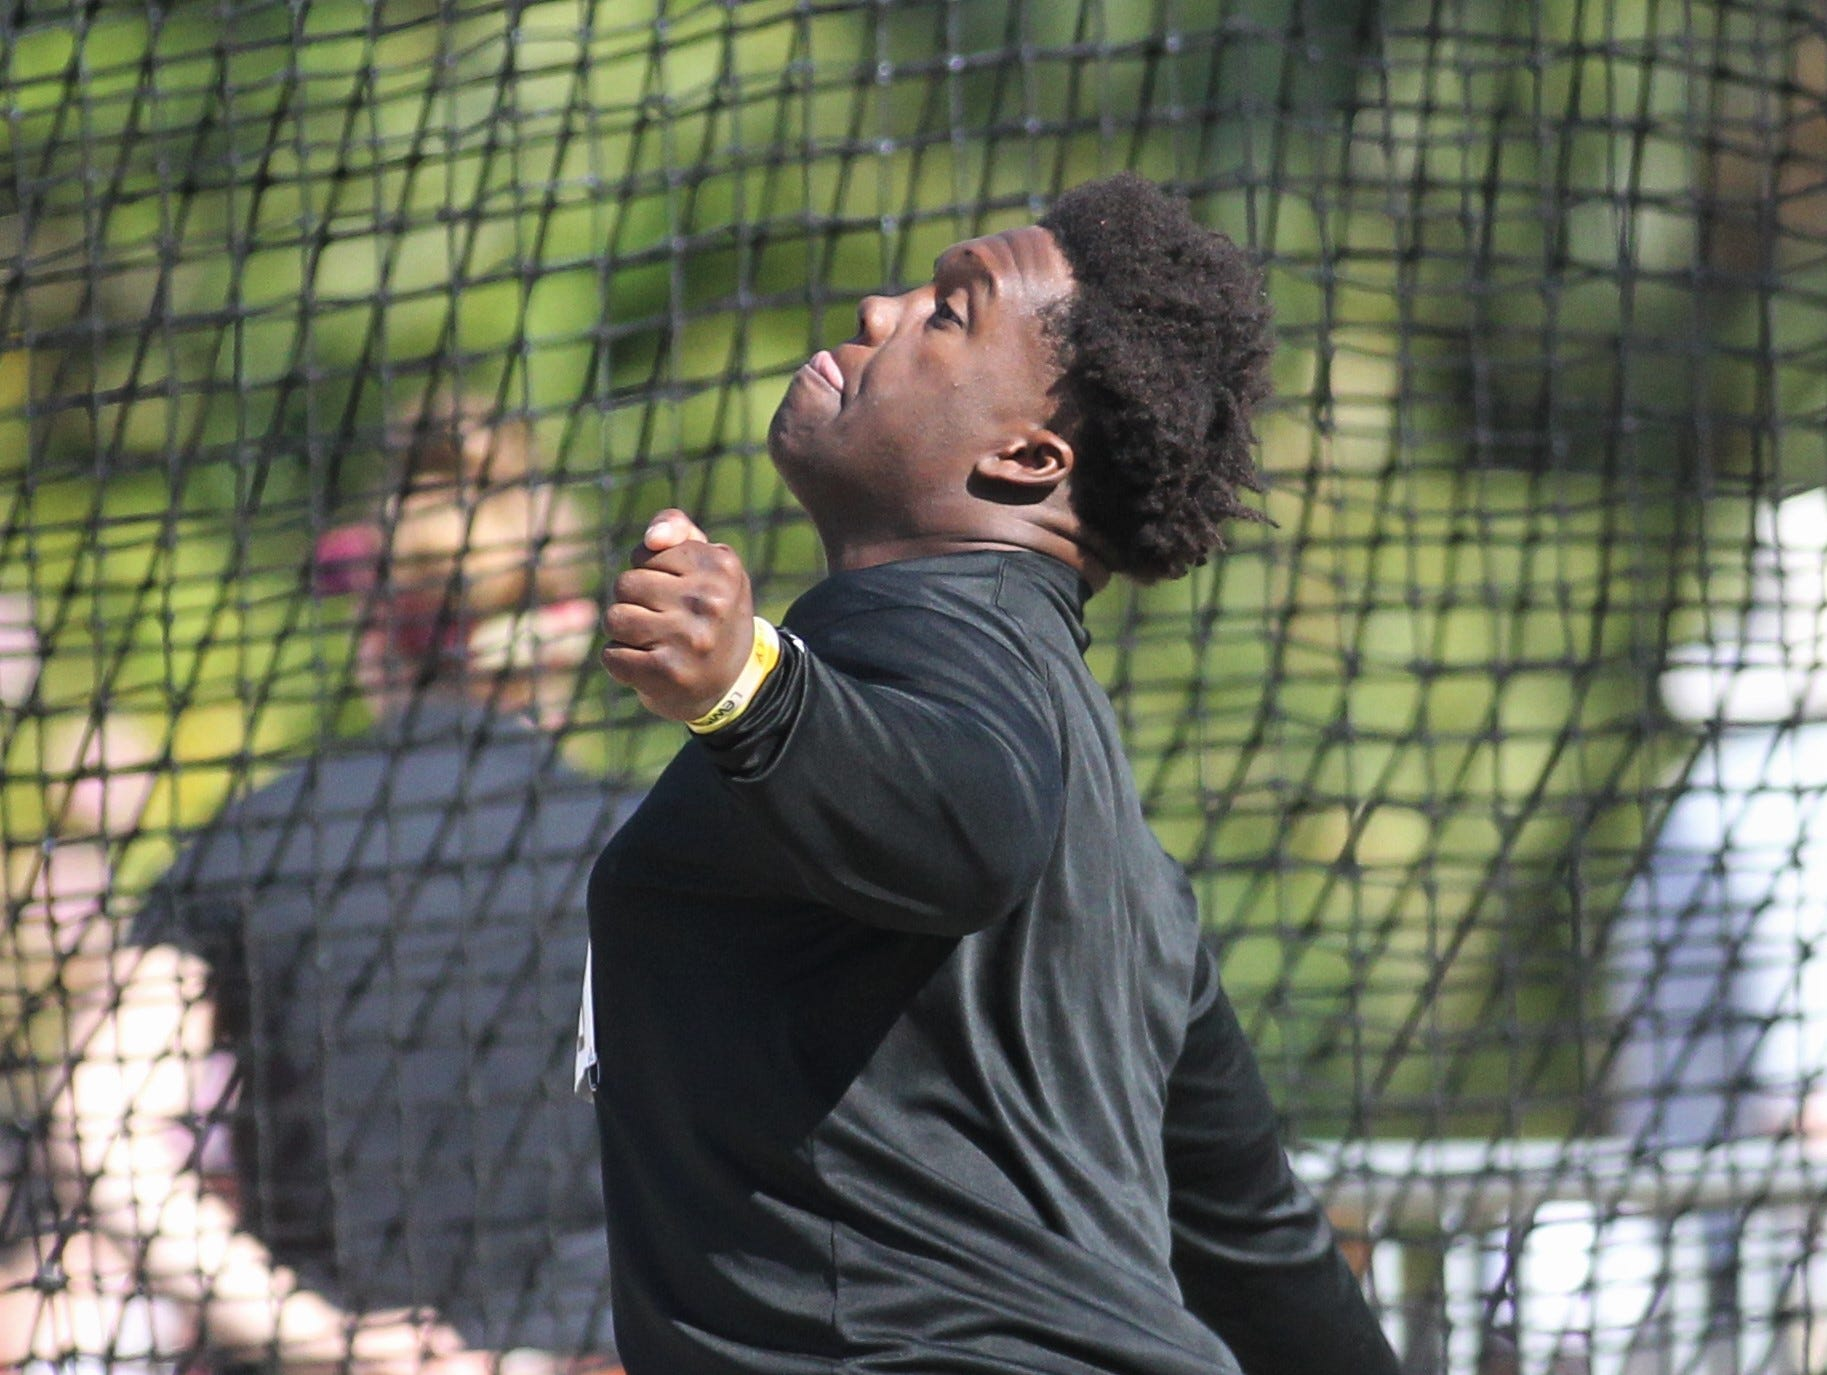 Lincoln's Jourdan Jones throws discus during the 40th annual FSU Relays at Mike Long Track on Saturday, March 23, 2019.